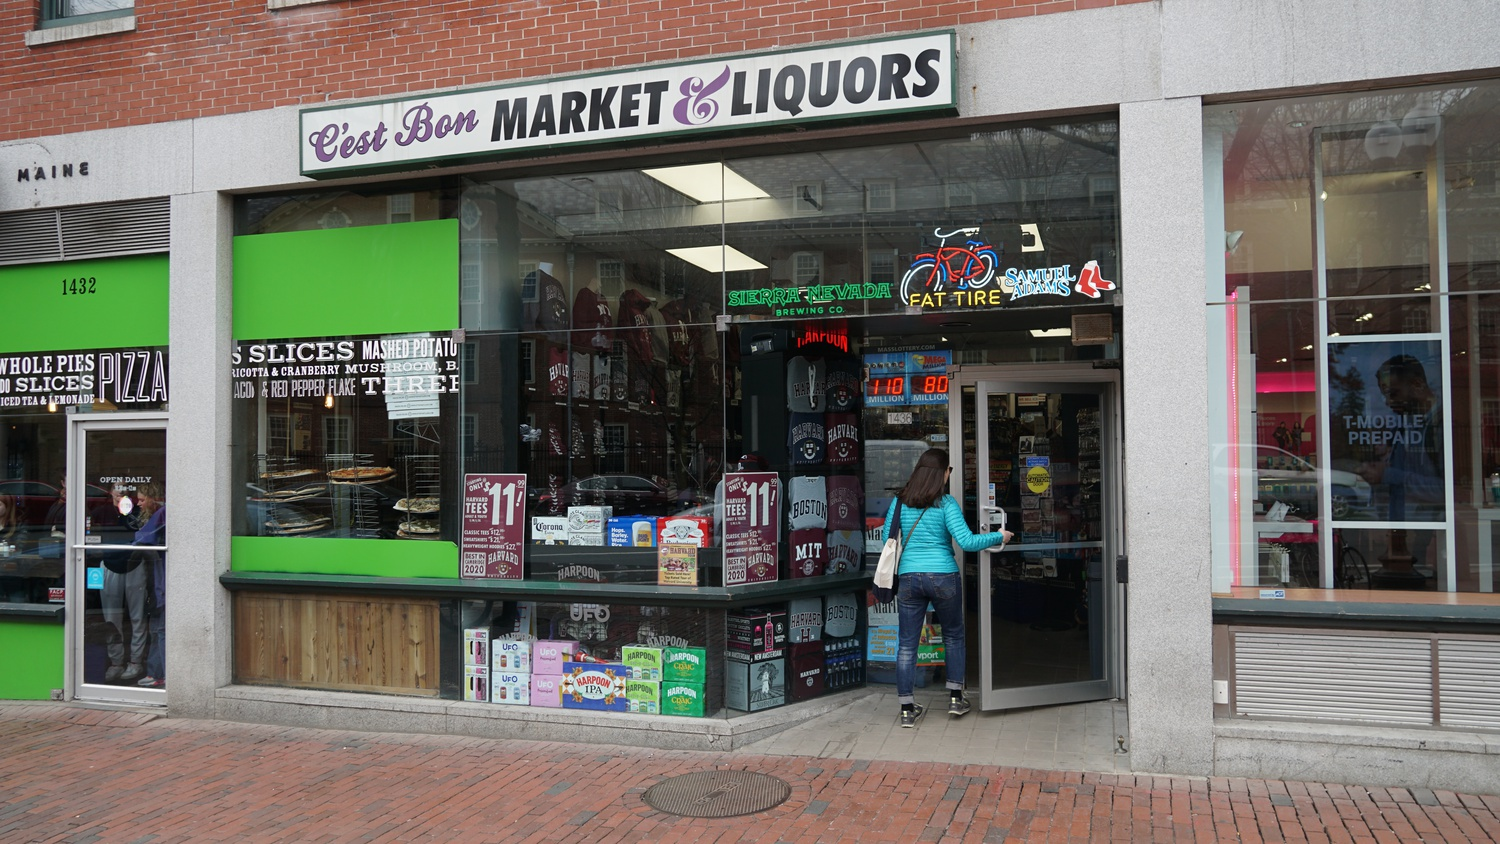 Many business in Harvard Square expect that they will be affected students leaving campus halfway through the semester.